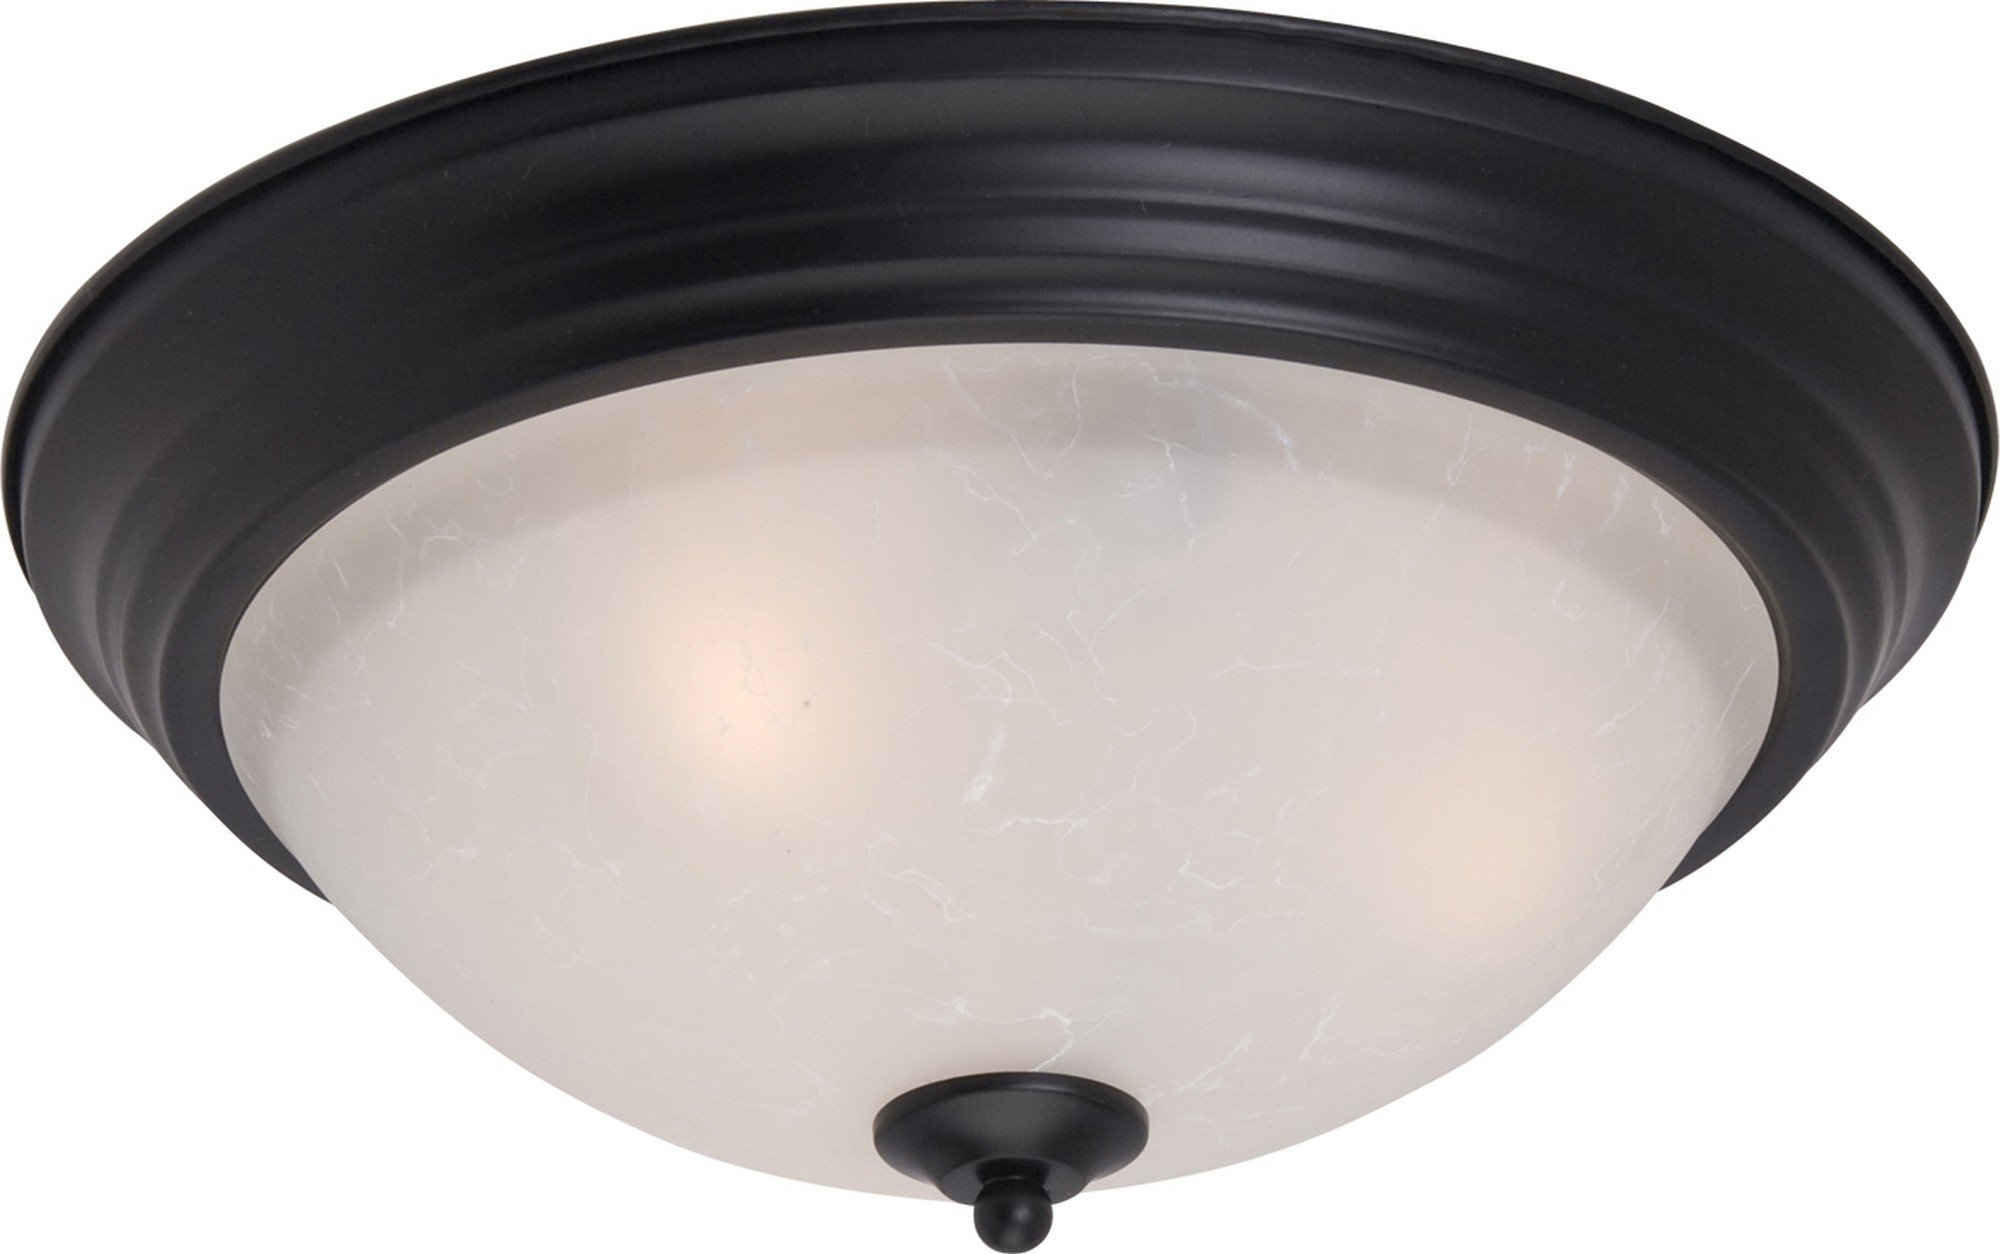 Maxim 5842ICBK Essentials 3-Light Flush Mount, Black Finish, Ice Glass, MB Incandescent Incandescent Bulb , 60W Max., Dry Safety Rating, Glass Shade Material, Rated Lumens